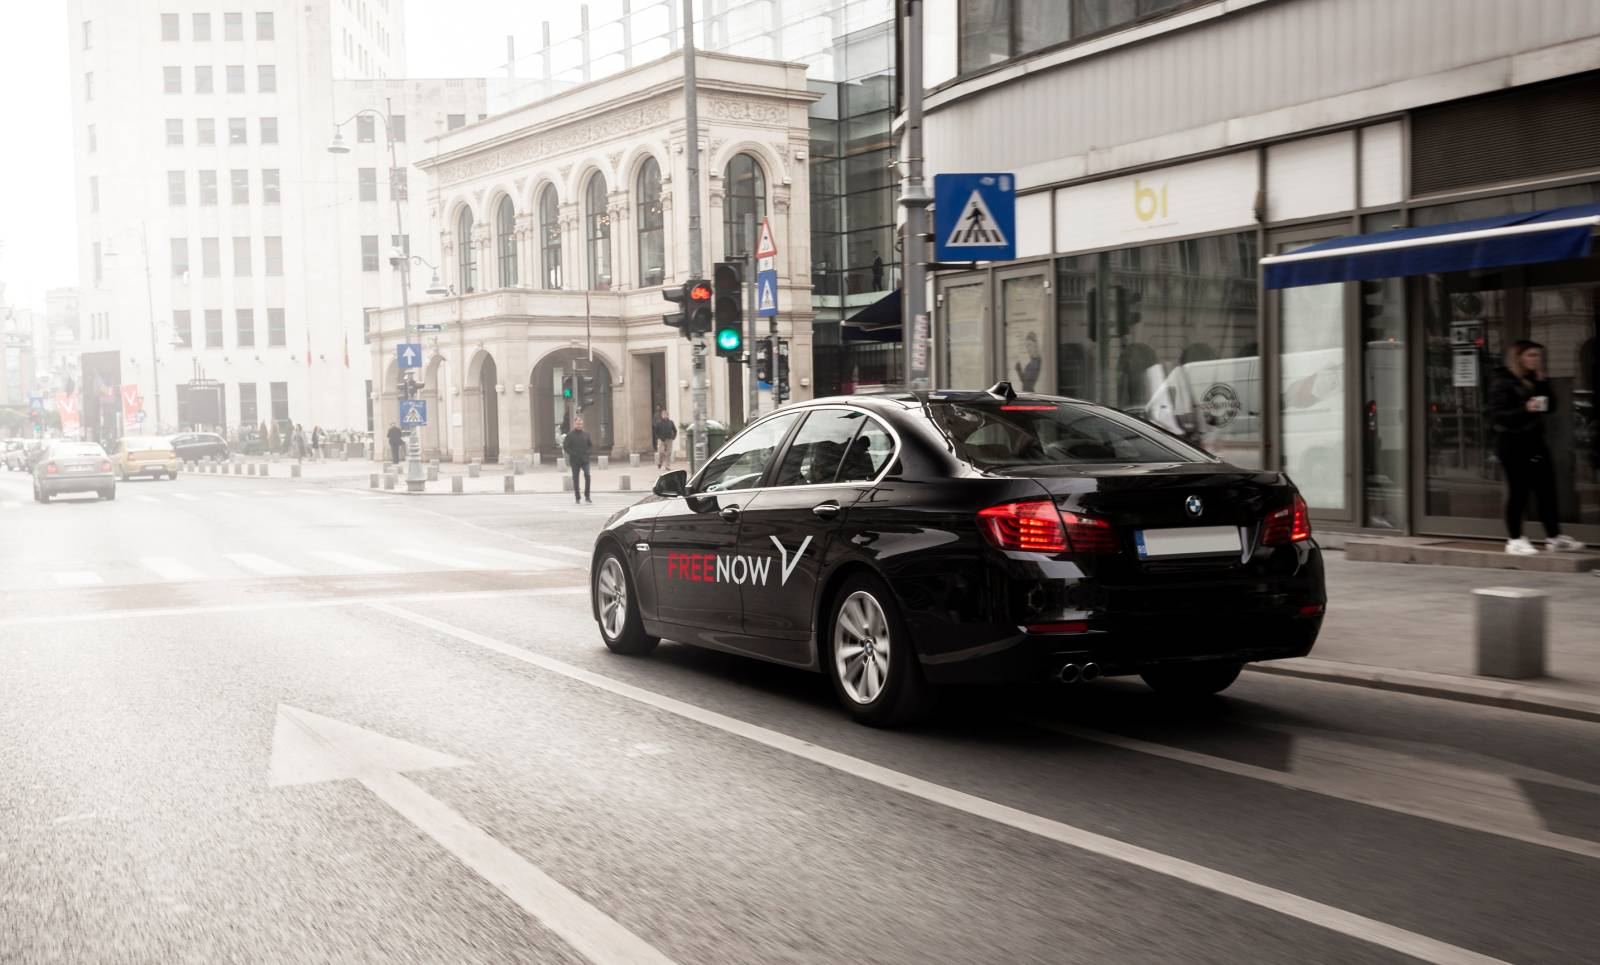 Clever Taxi tranforma free now bmw daimler